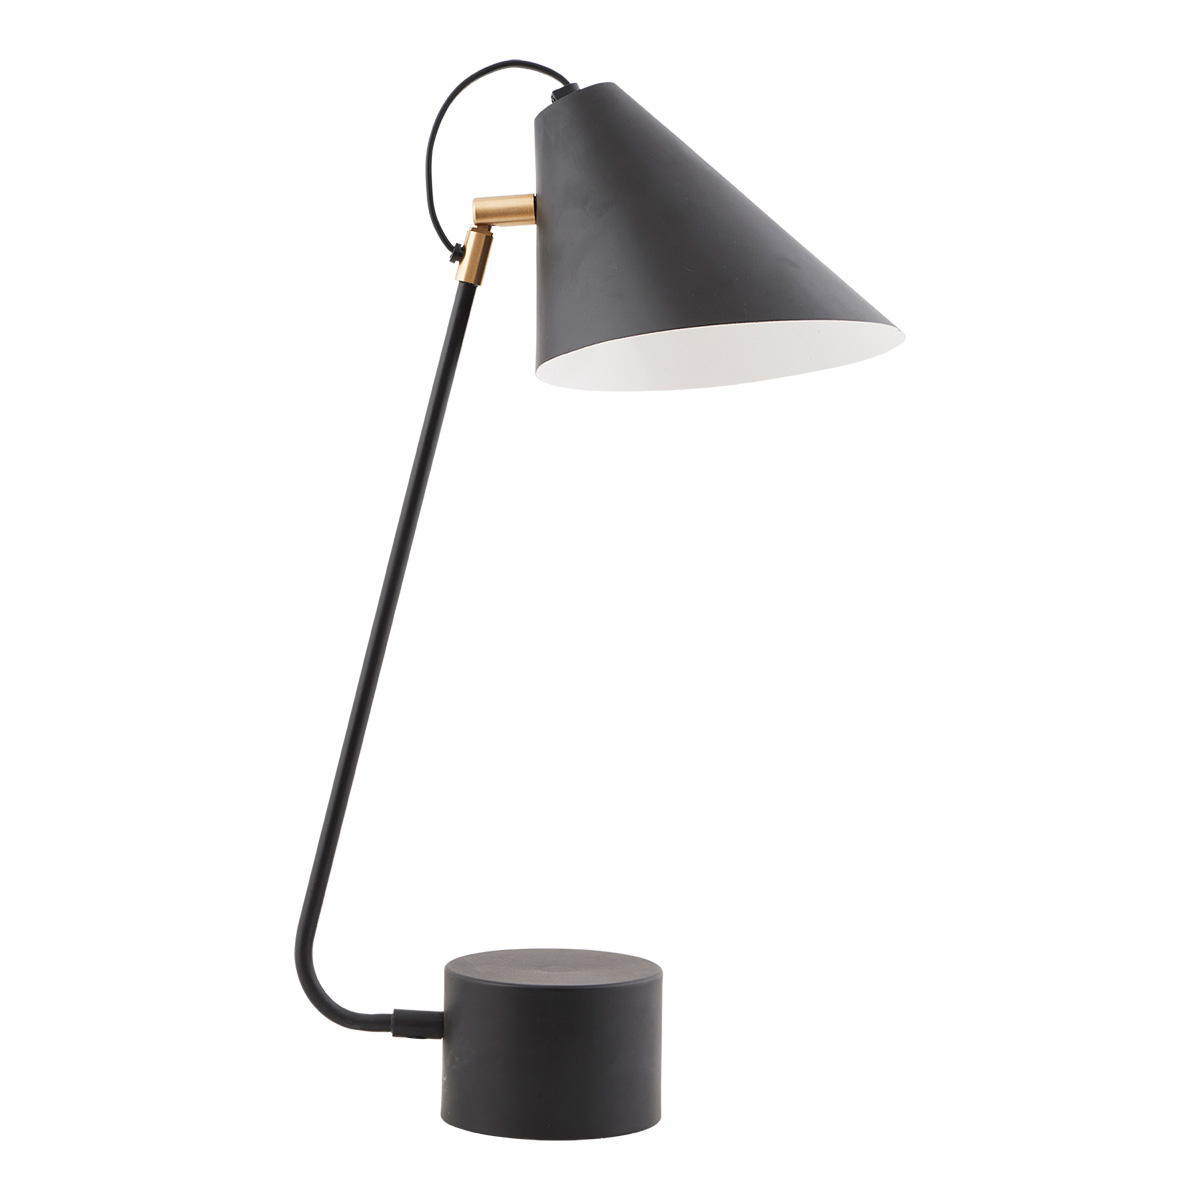 Club Bordslampa Svart/Vit 18-20 cm